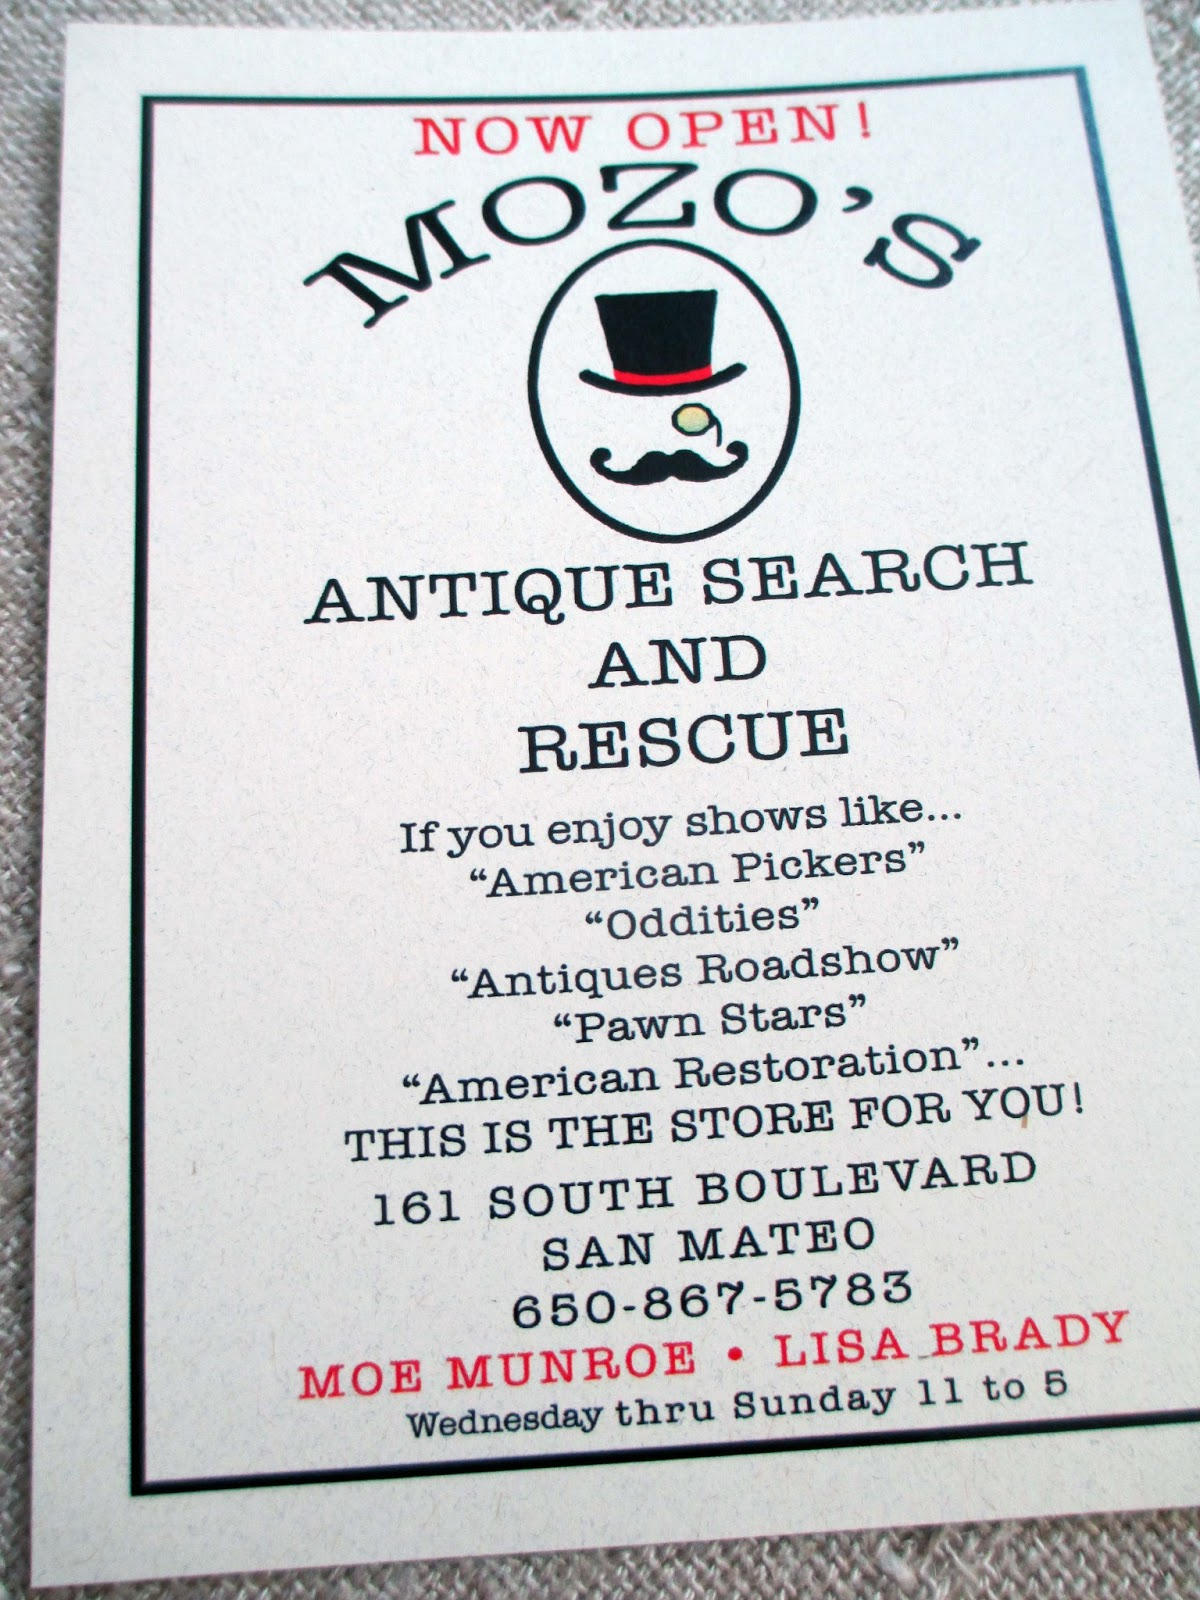 The French Circus: Mozo\'s Antique Search and Rescue